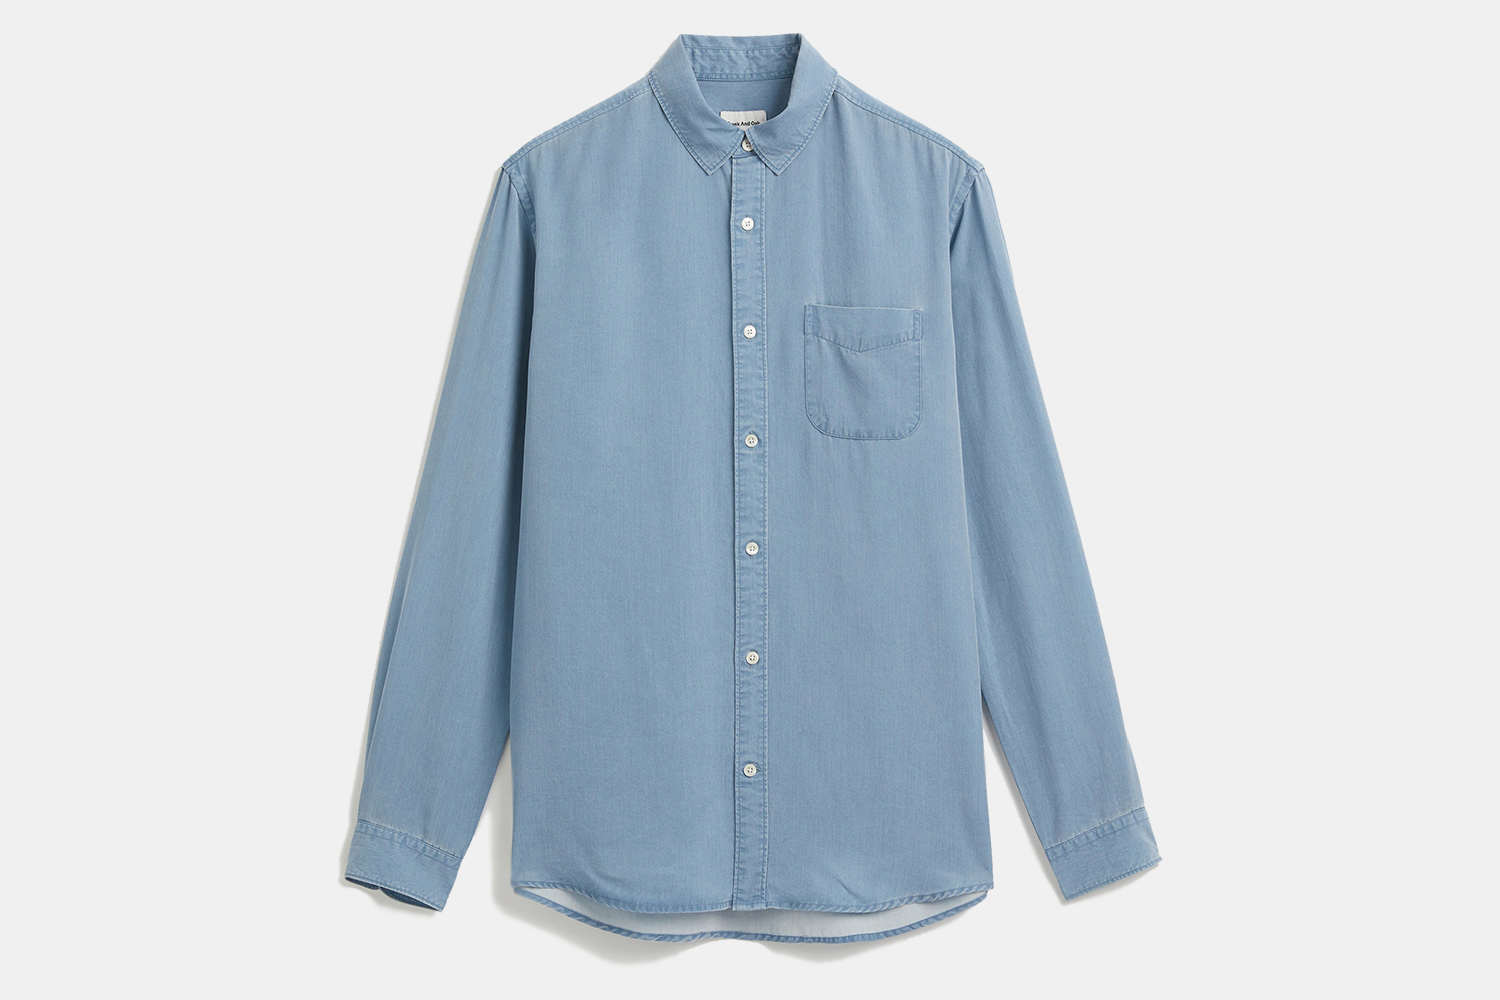 Frank And Oak Tencel lyocell Eco-Dye Shirt